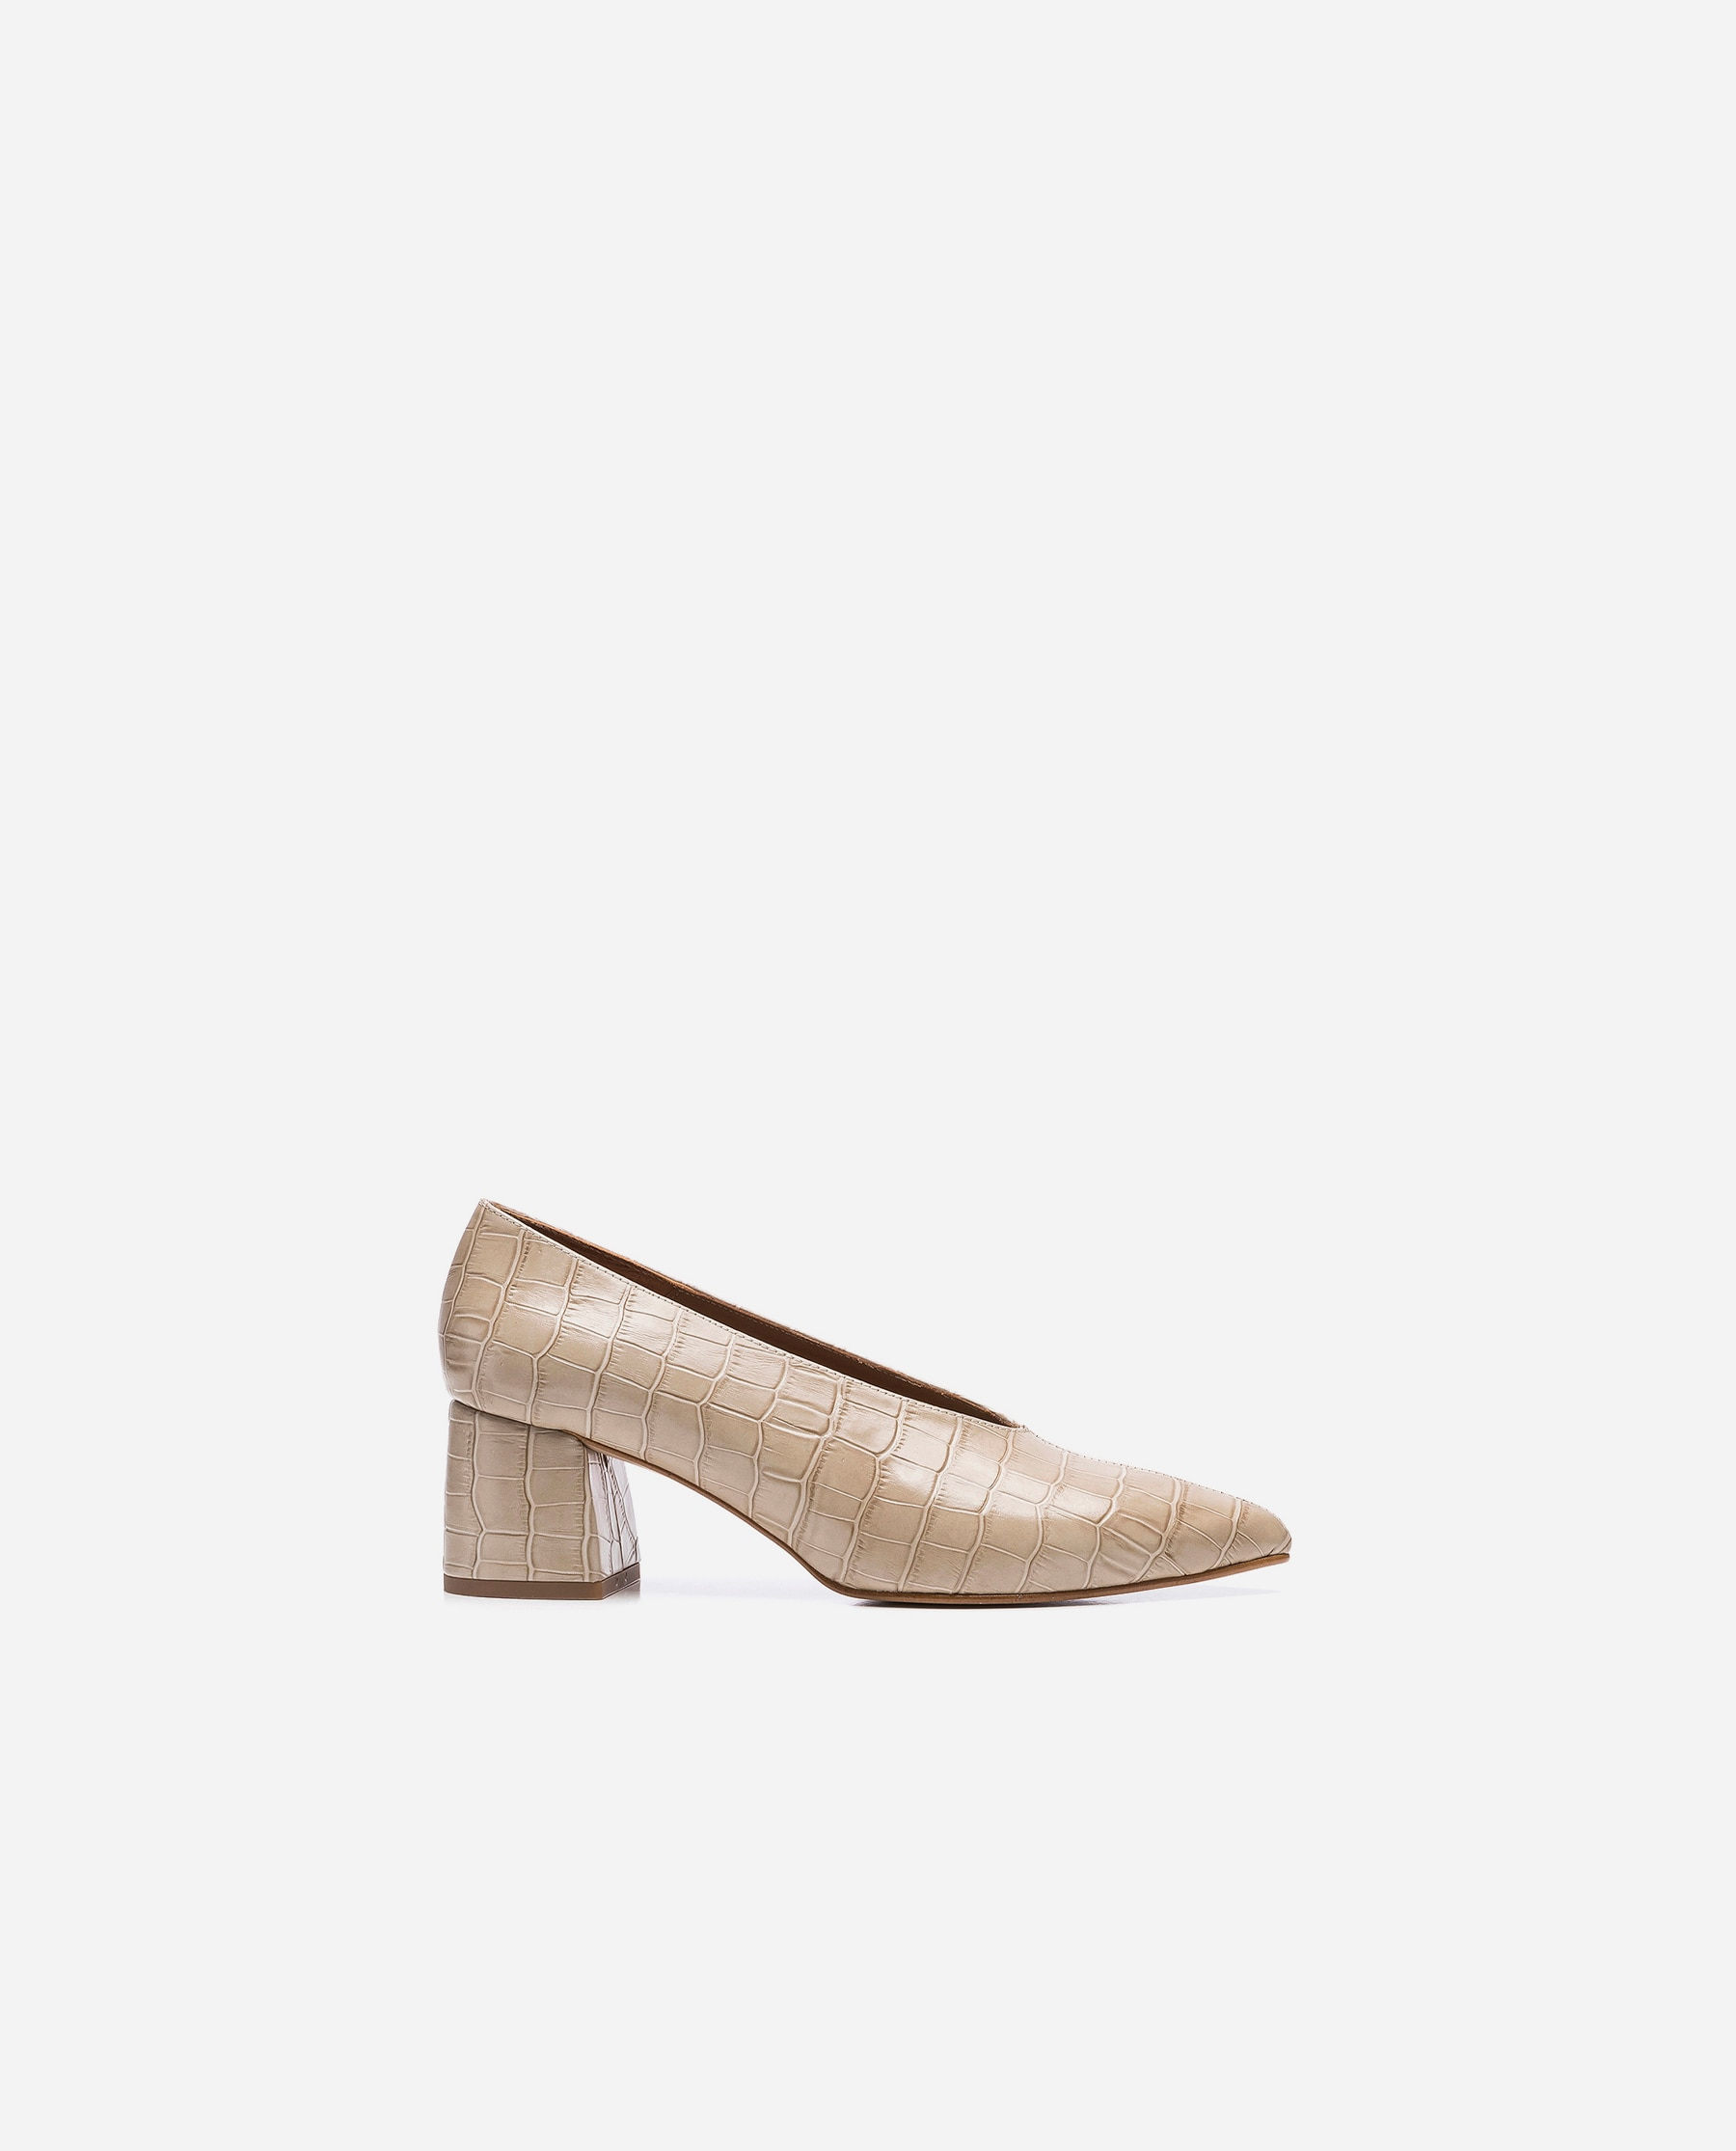 Andie Croco Leather Sand